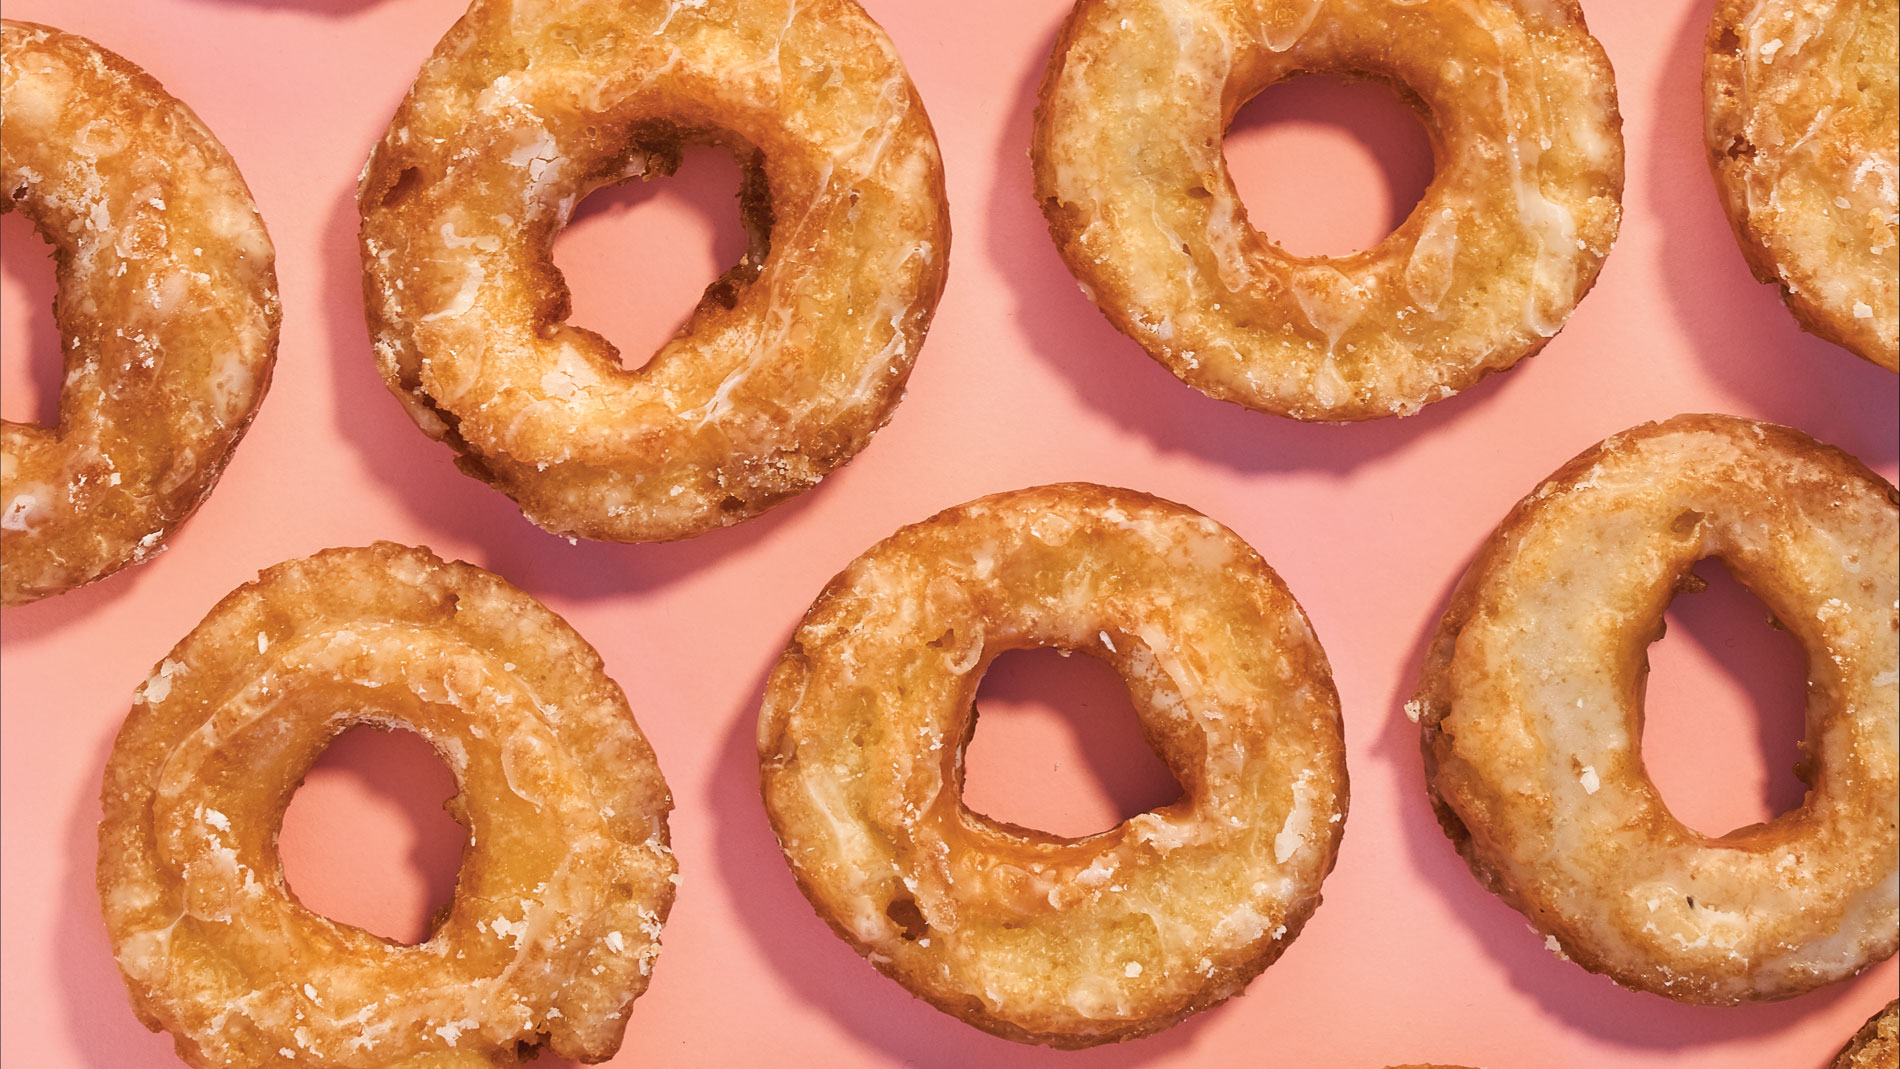 several glazed doughnuts on a pink background